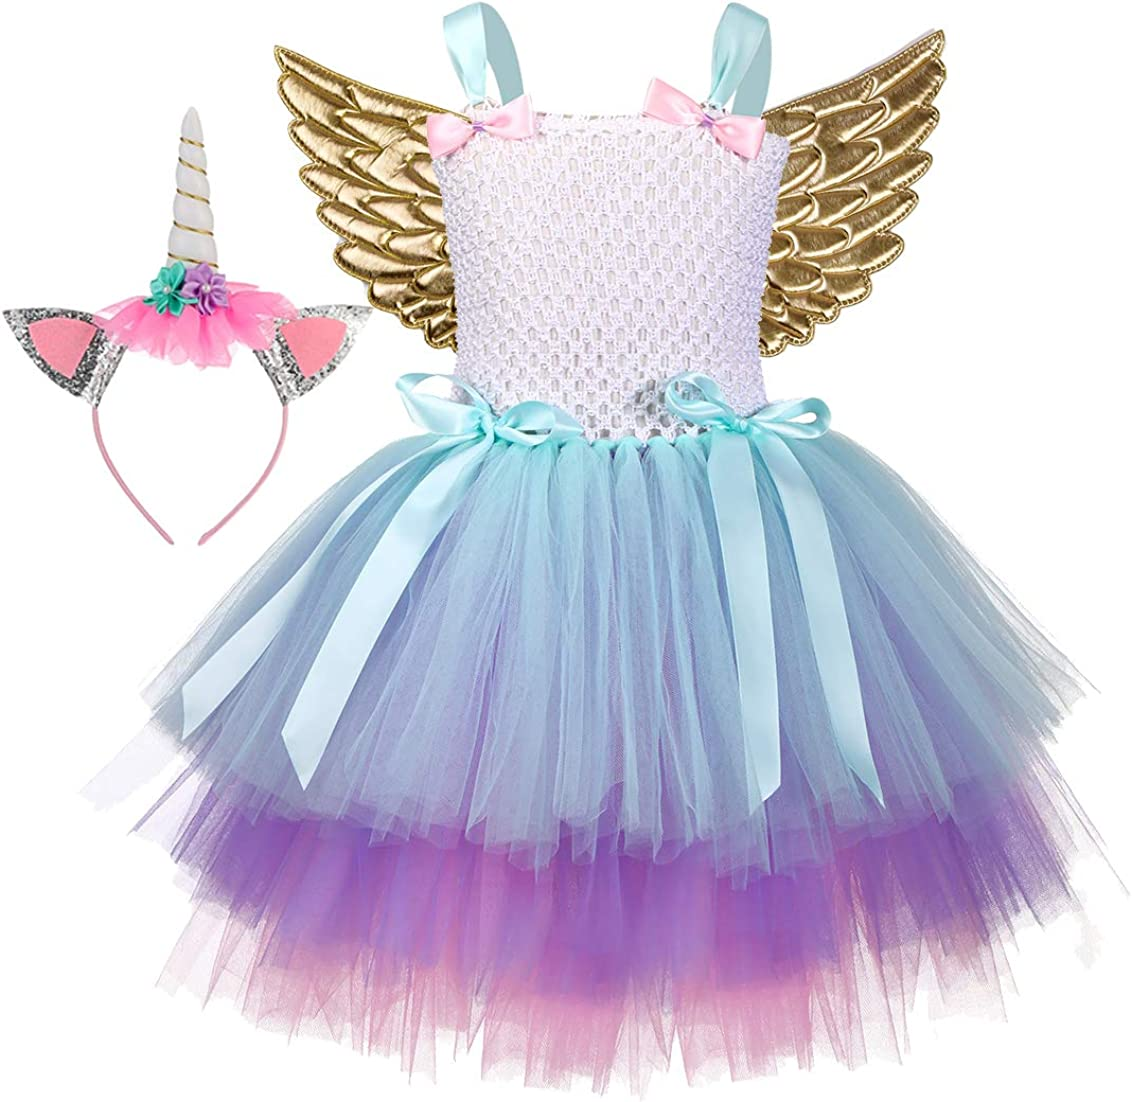 Tutu Dreams 3pcs Princess Costume Dress for Girls 1-12Y Birthday Halloween Party